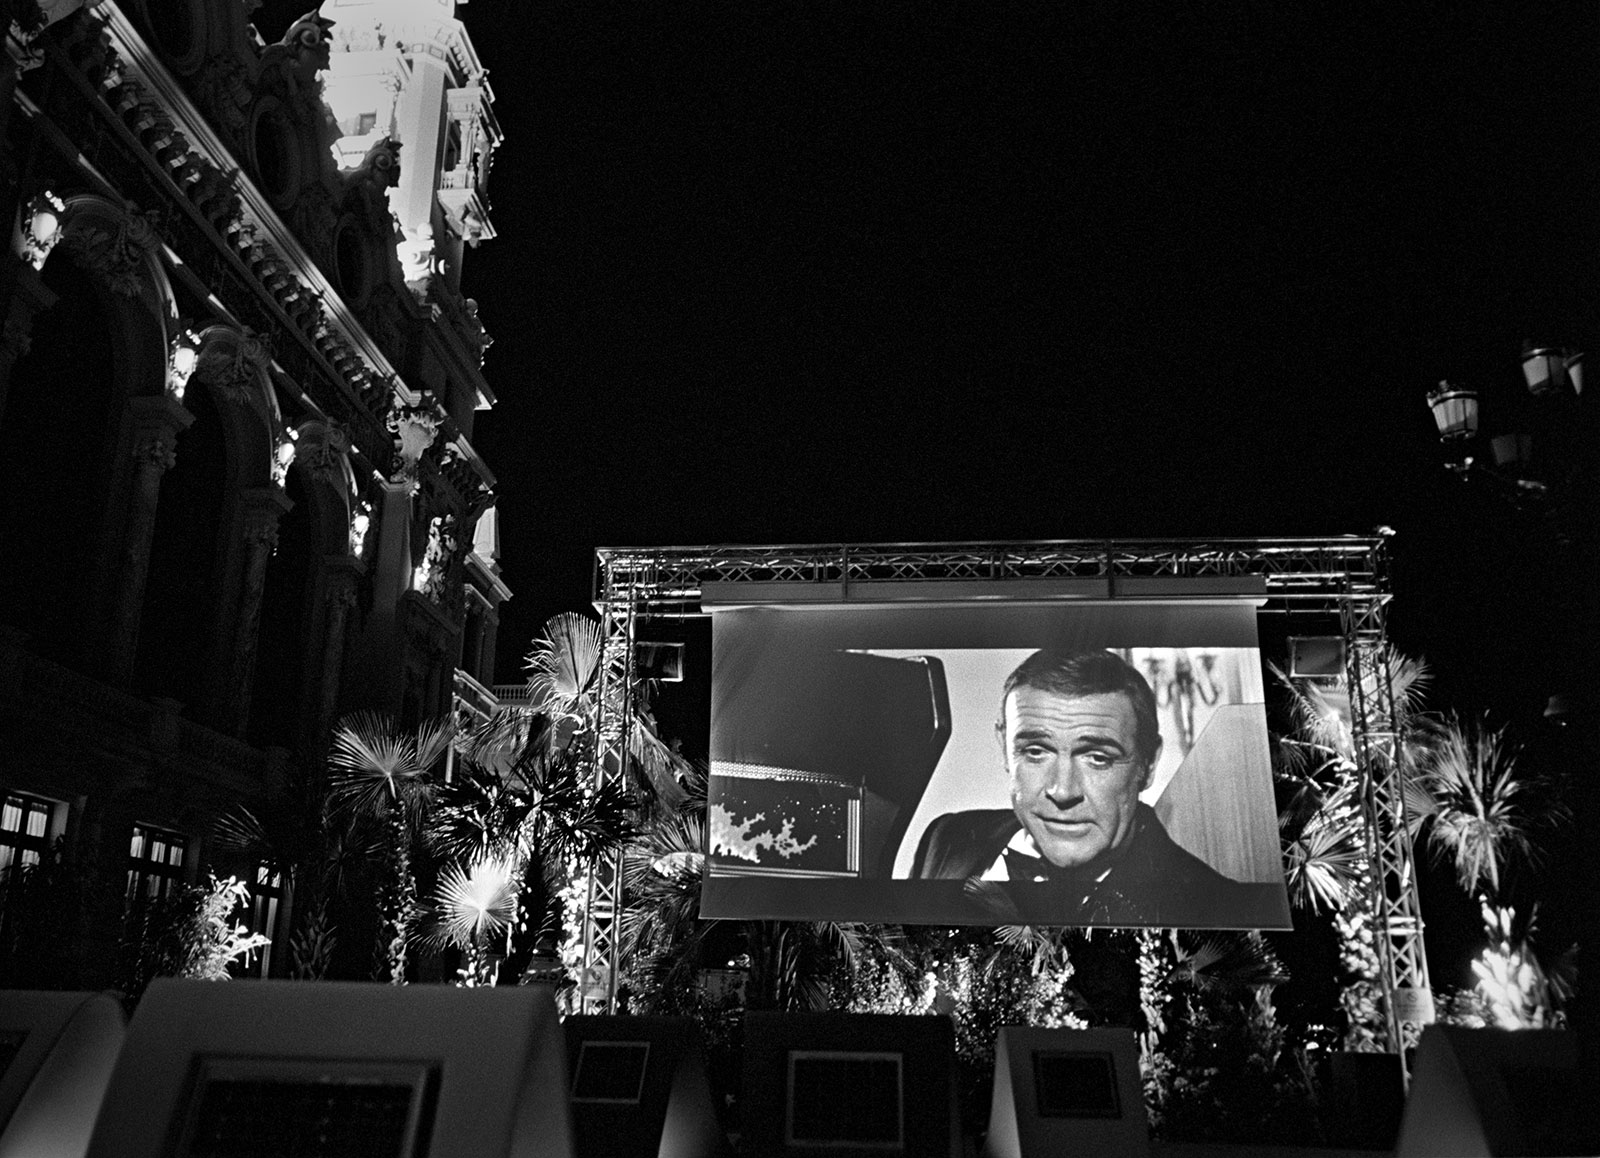 Monte Carlo and James Bond - a classic combination.